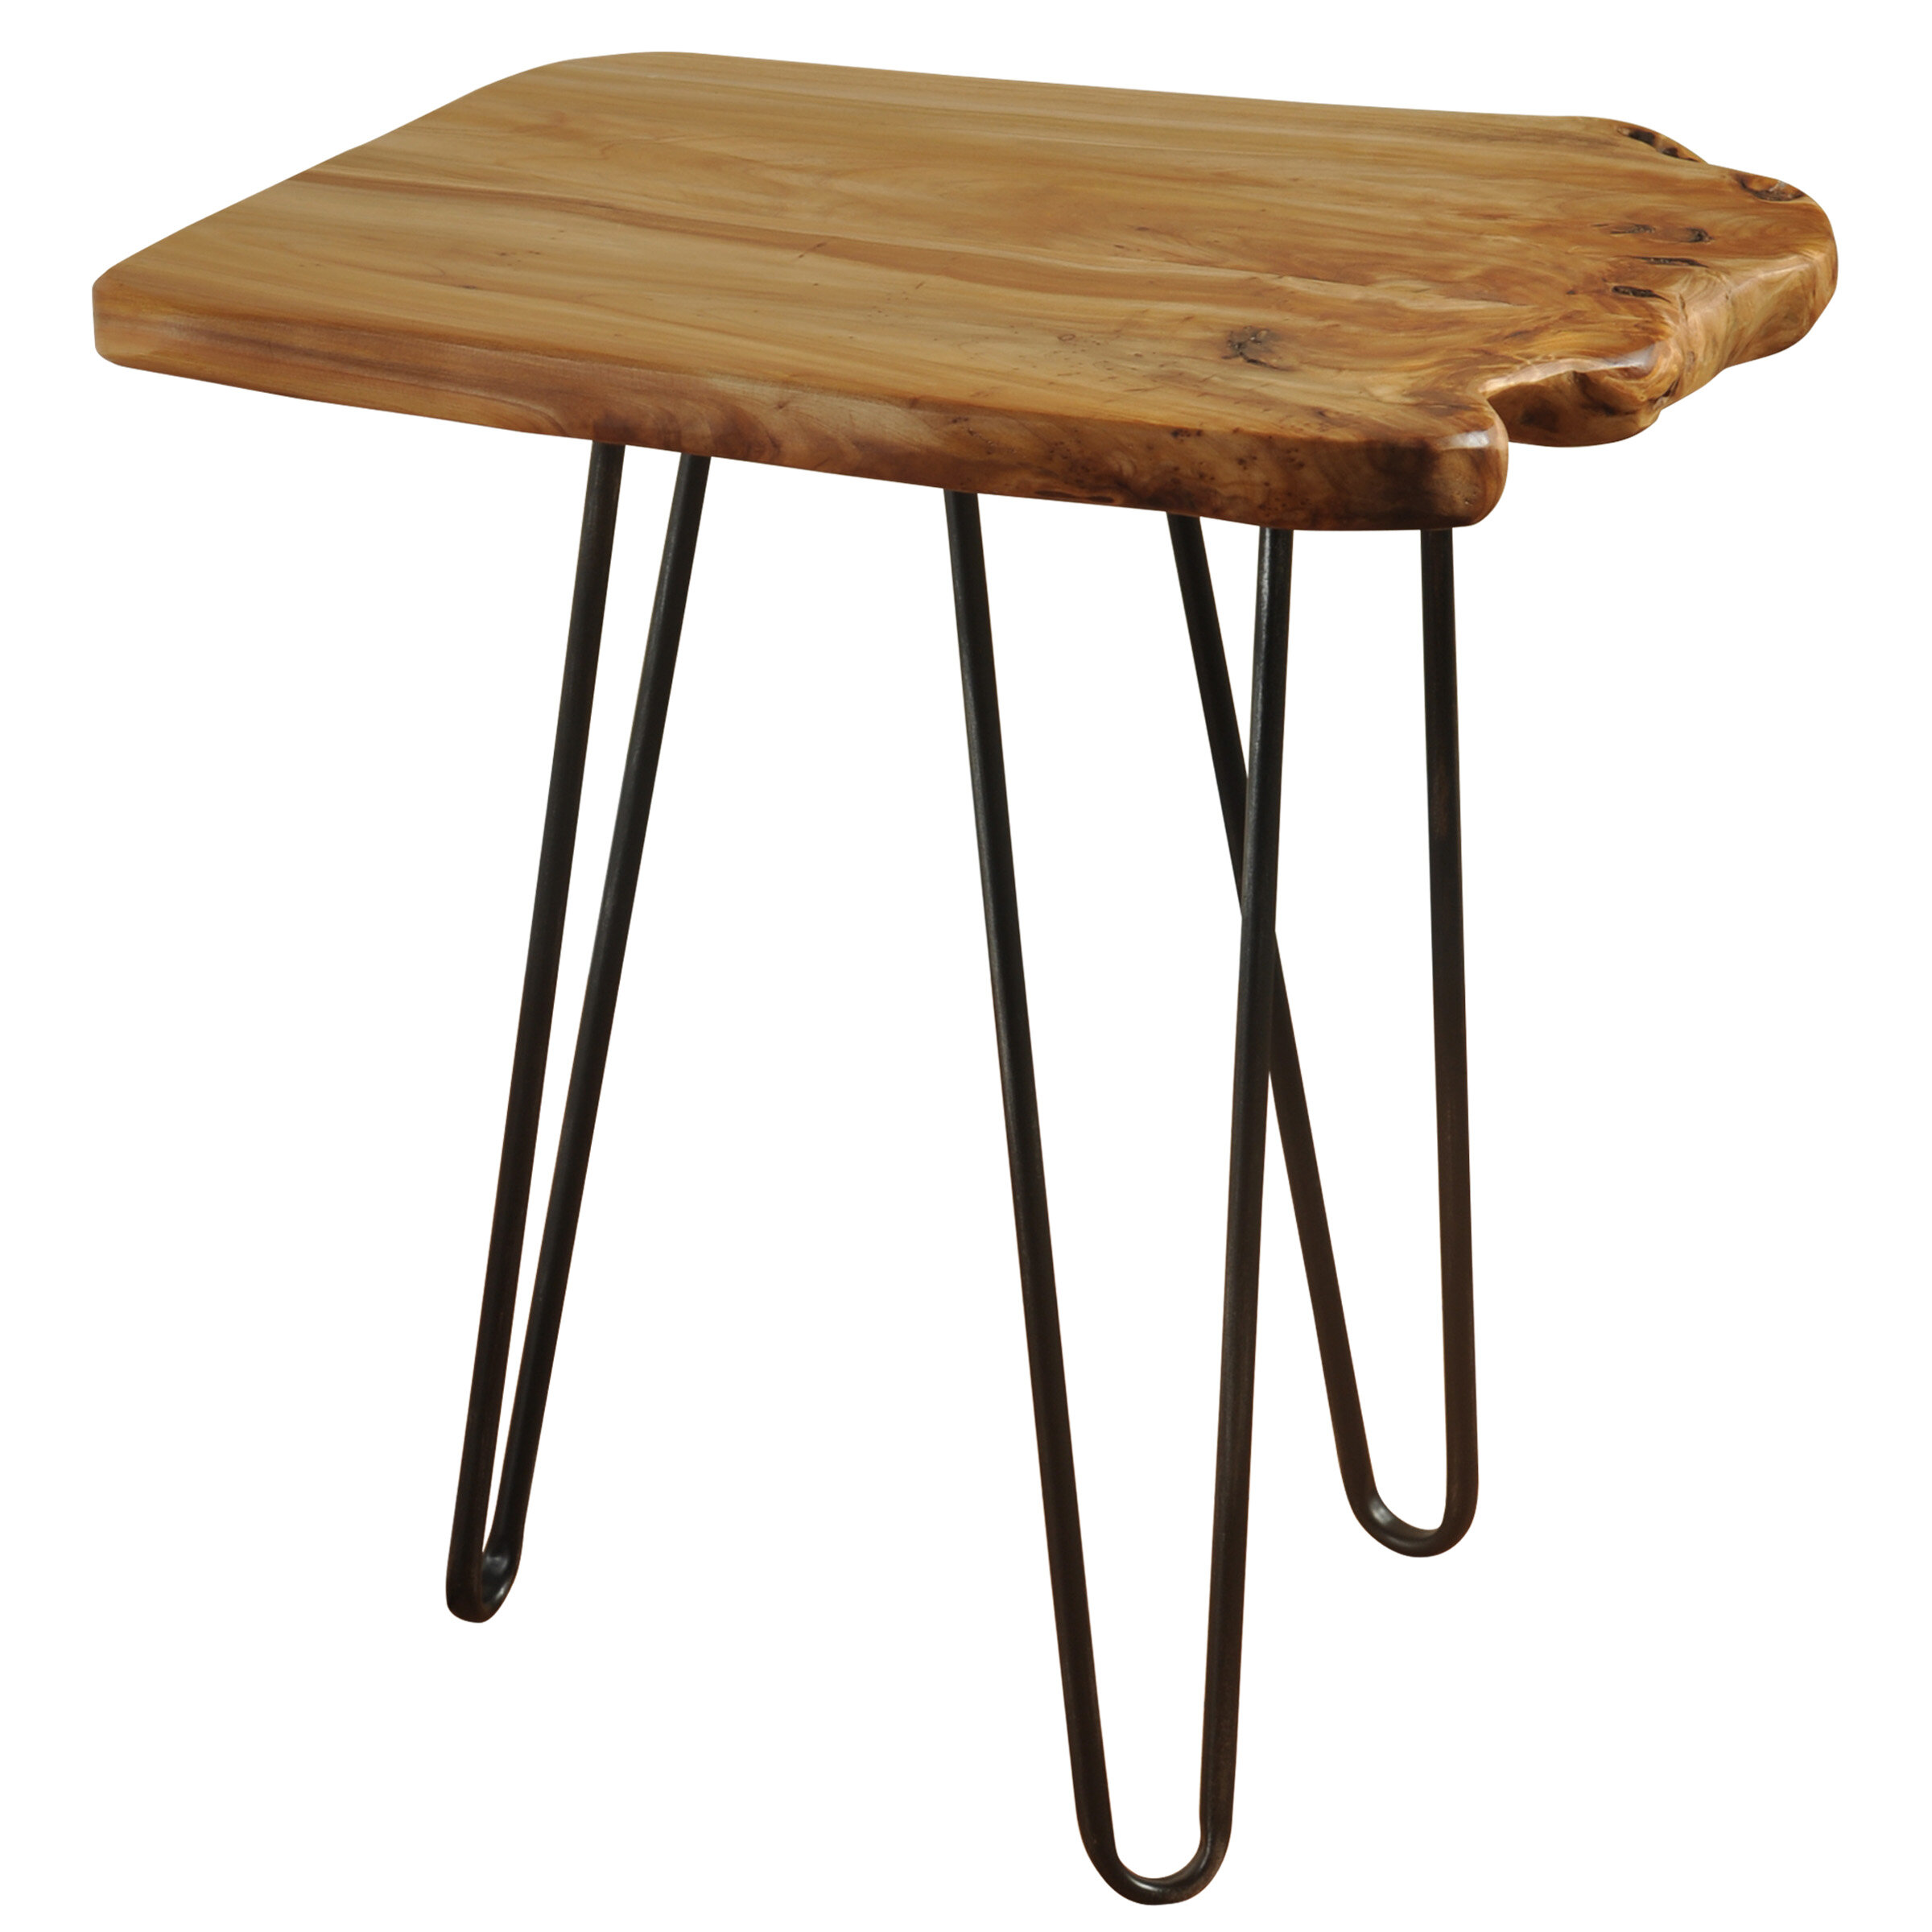 Union Rustic Knowles End Table | Wayfair